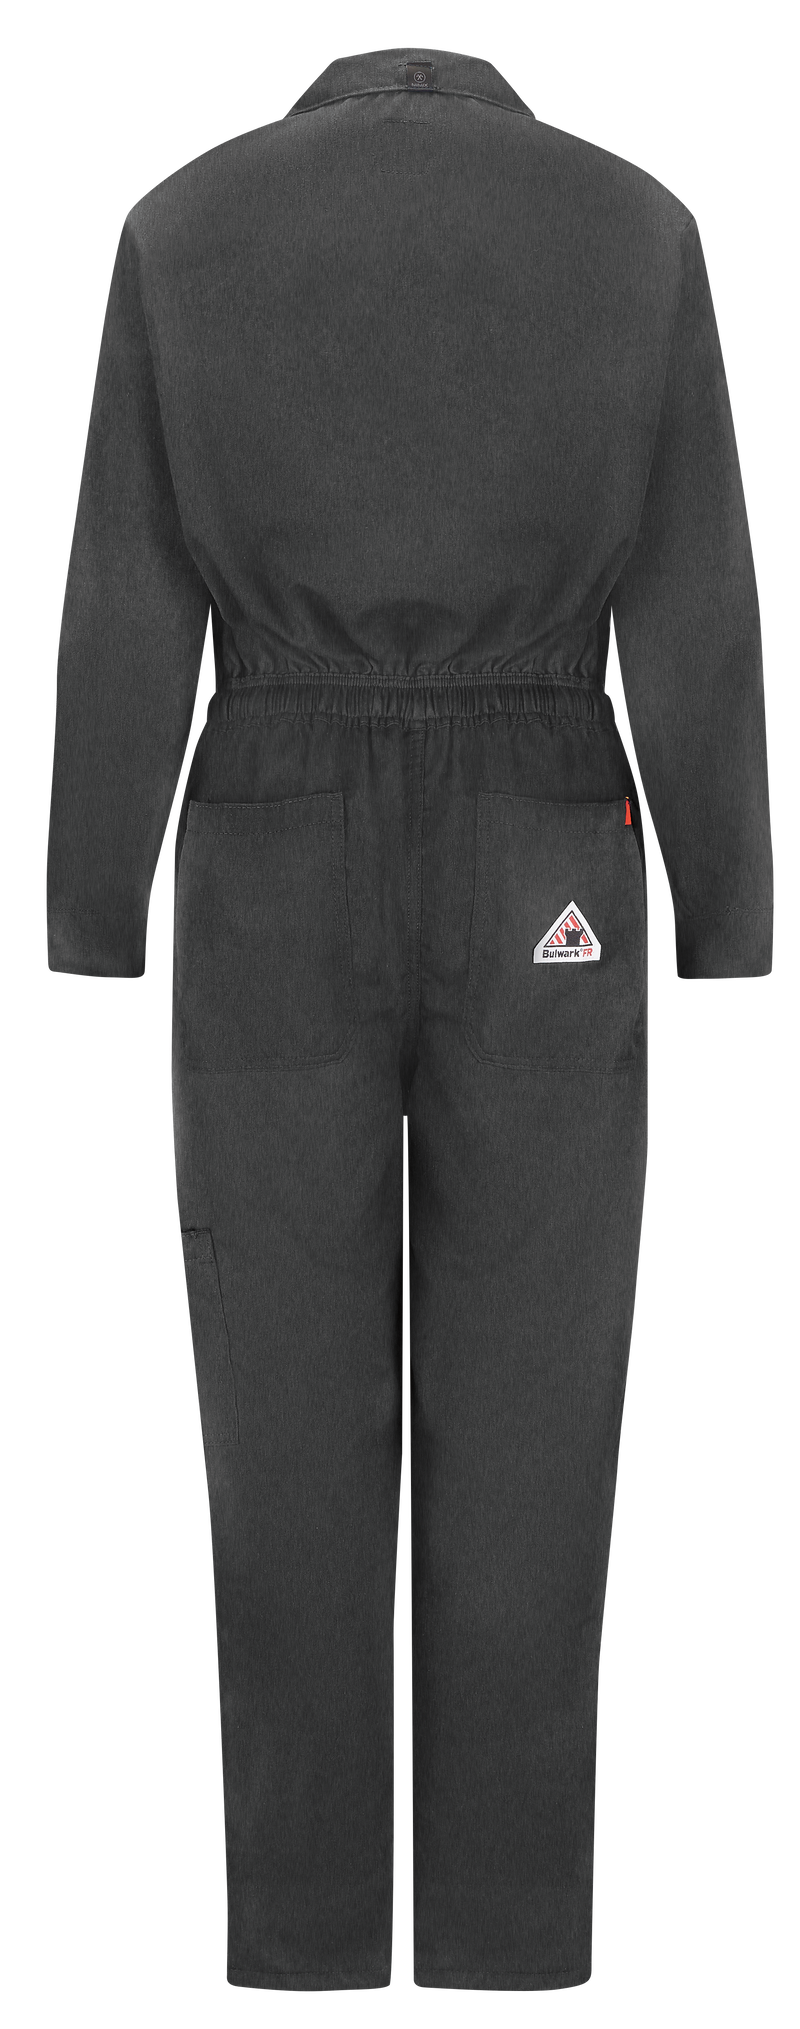 iQ Series® Women's Mobility Coverall with Insect Shield